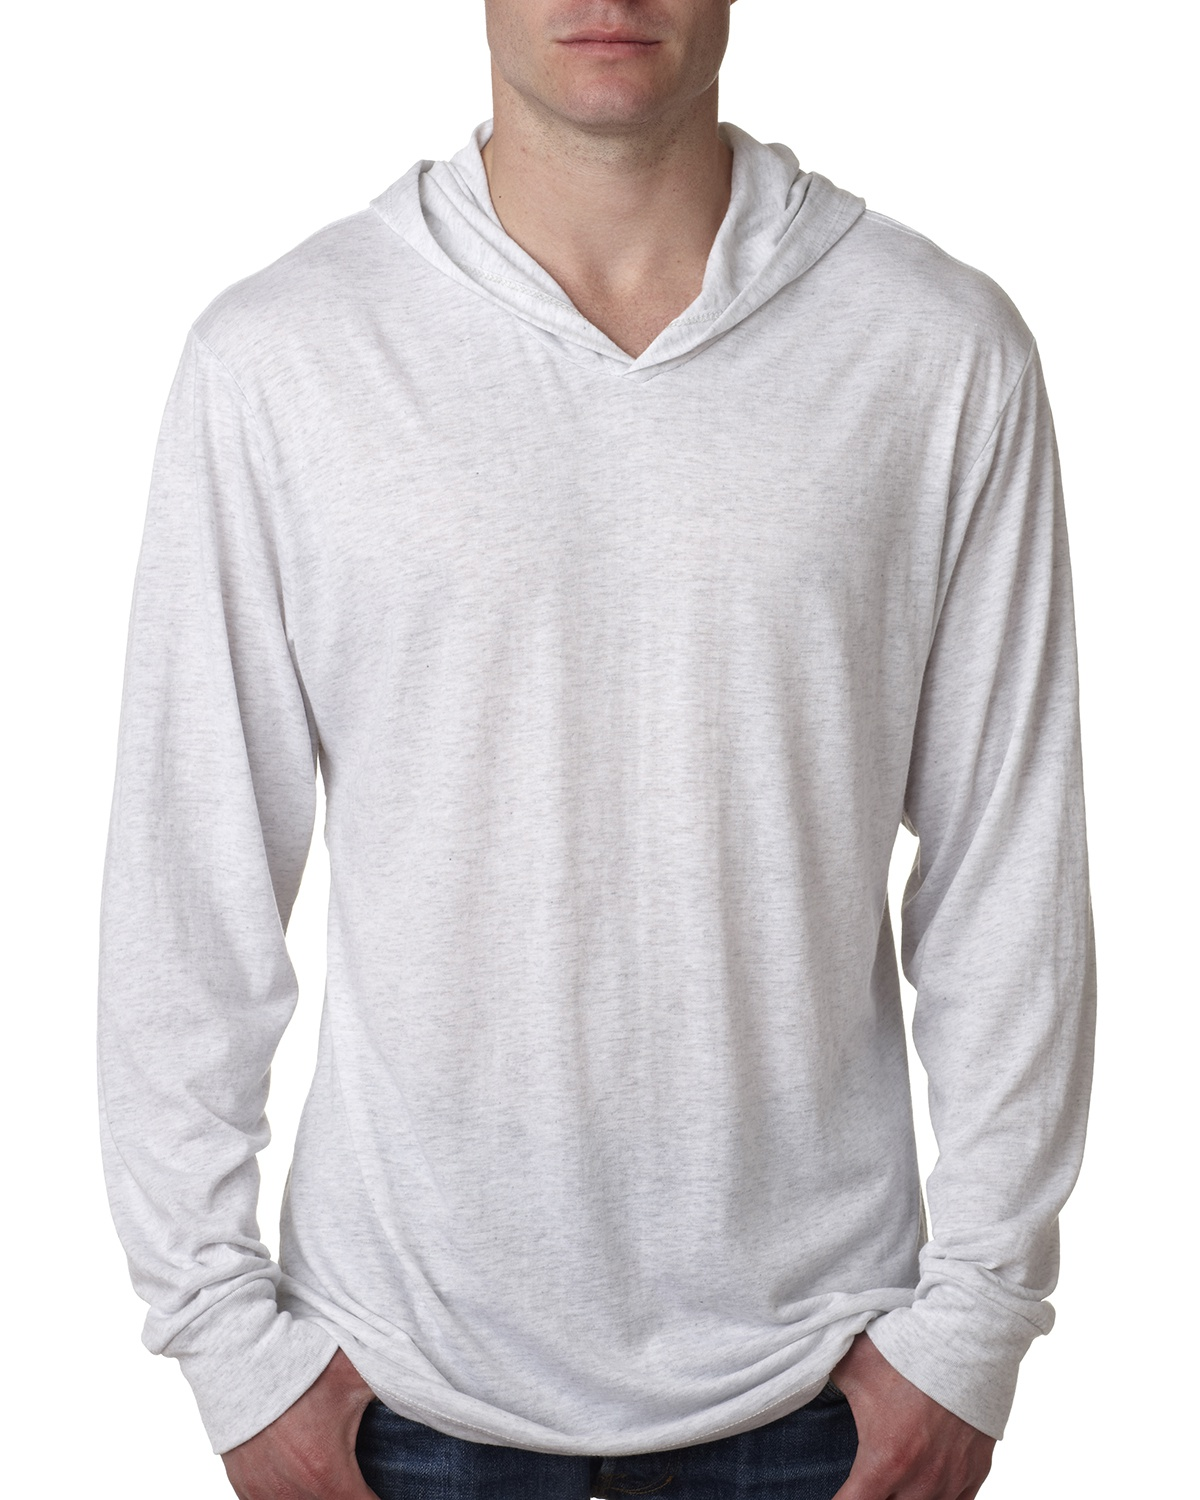 'Next Level N6021 Adult Triblend Long-Sleeve Hoody'